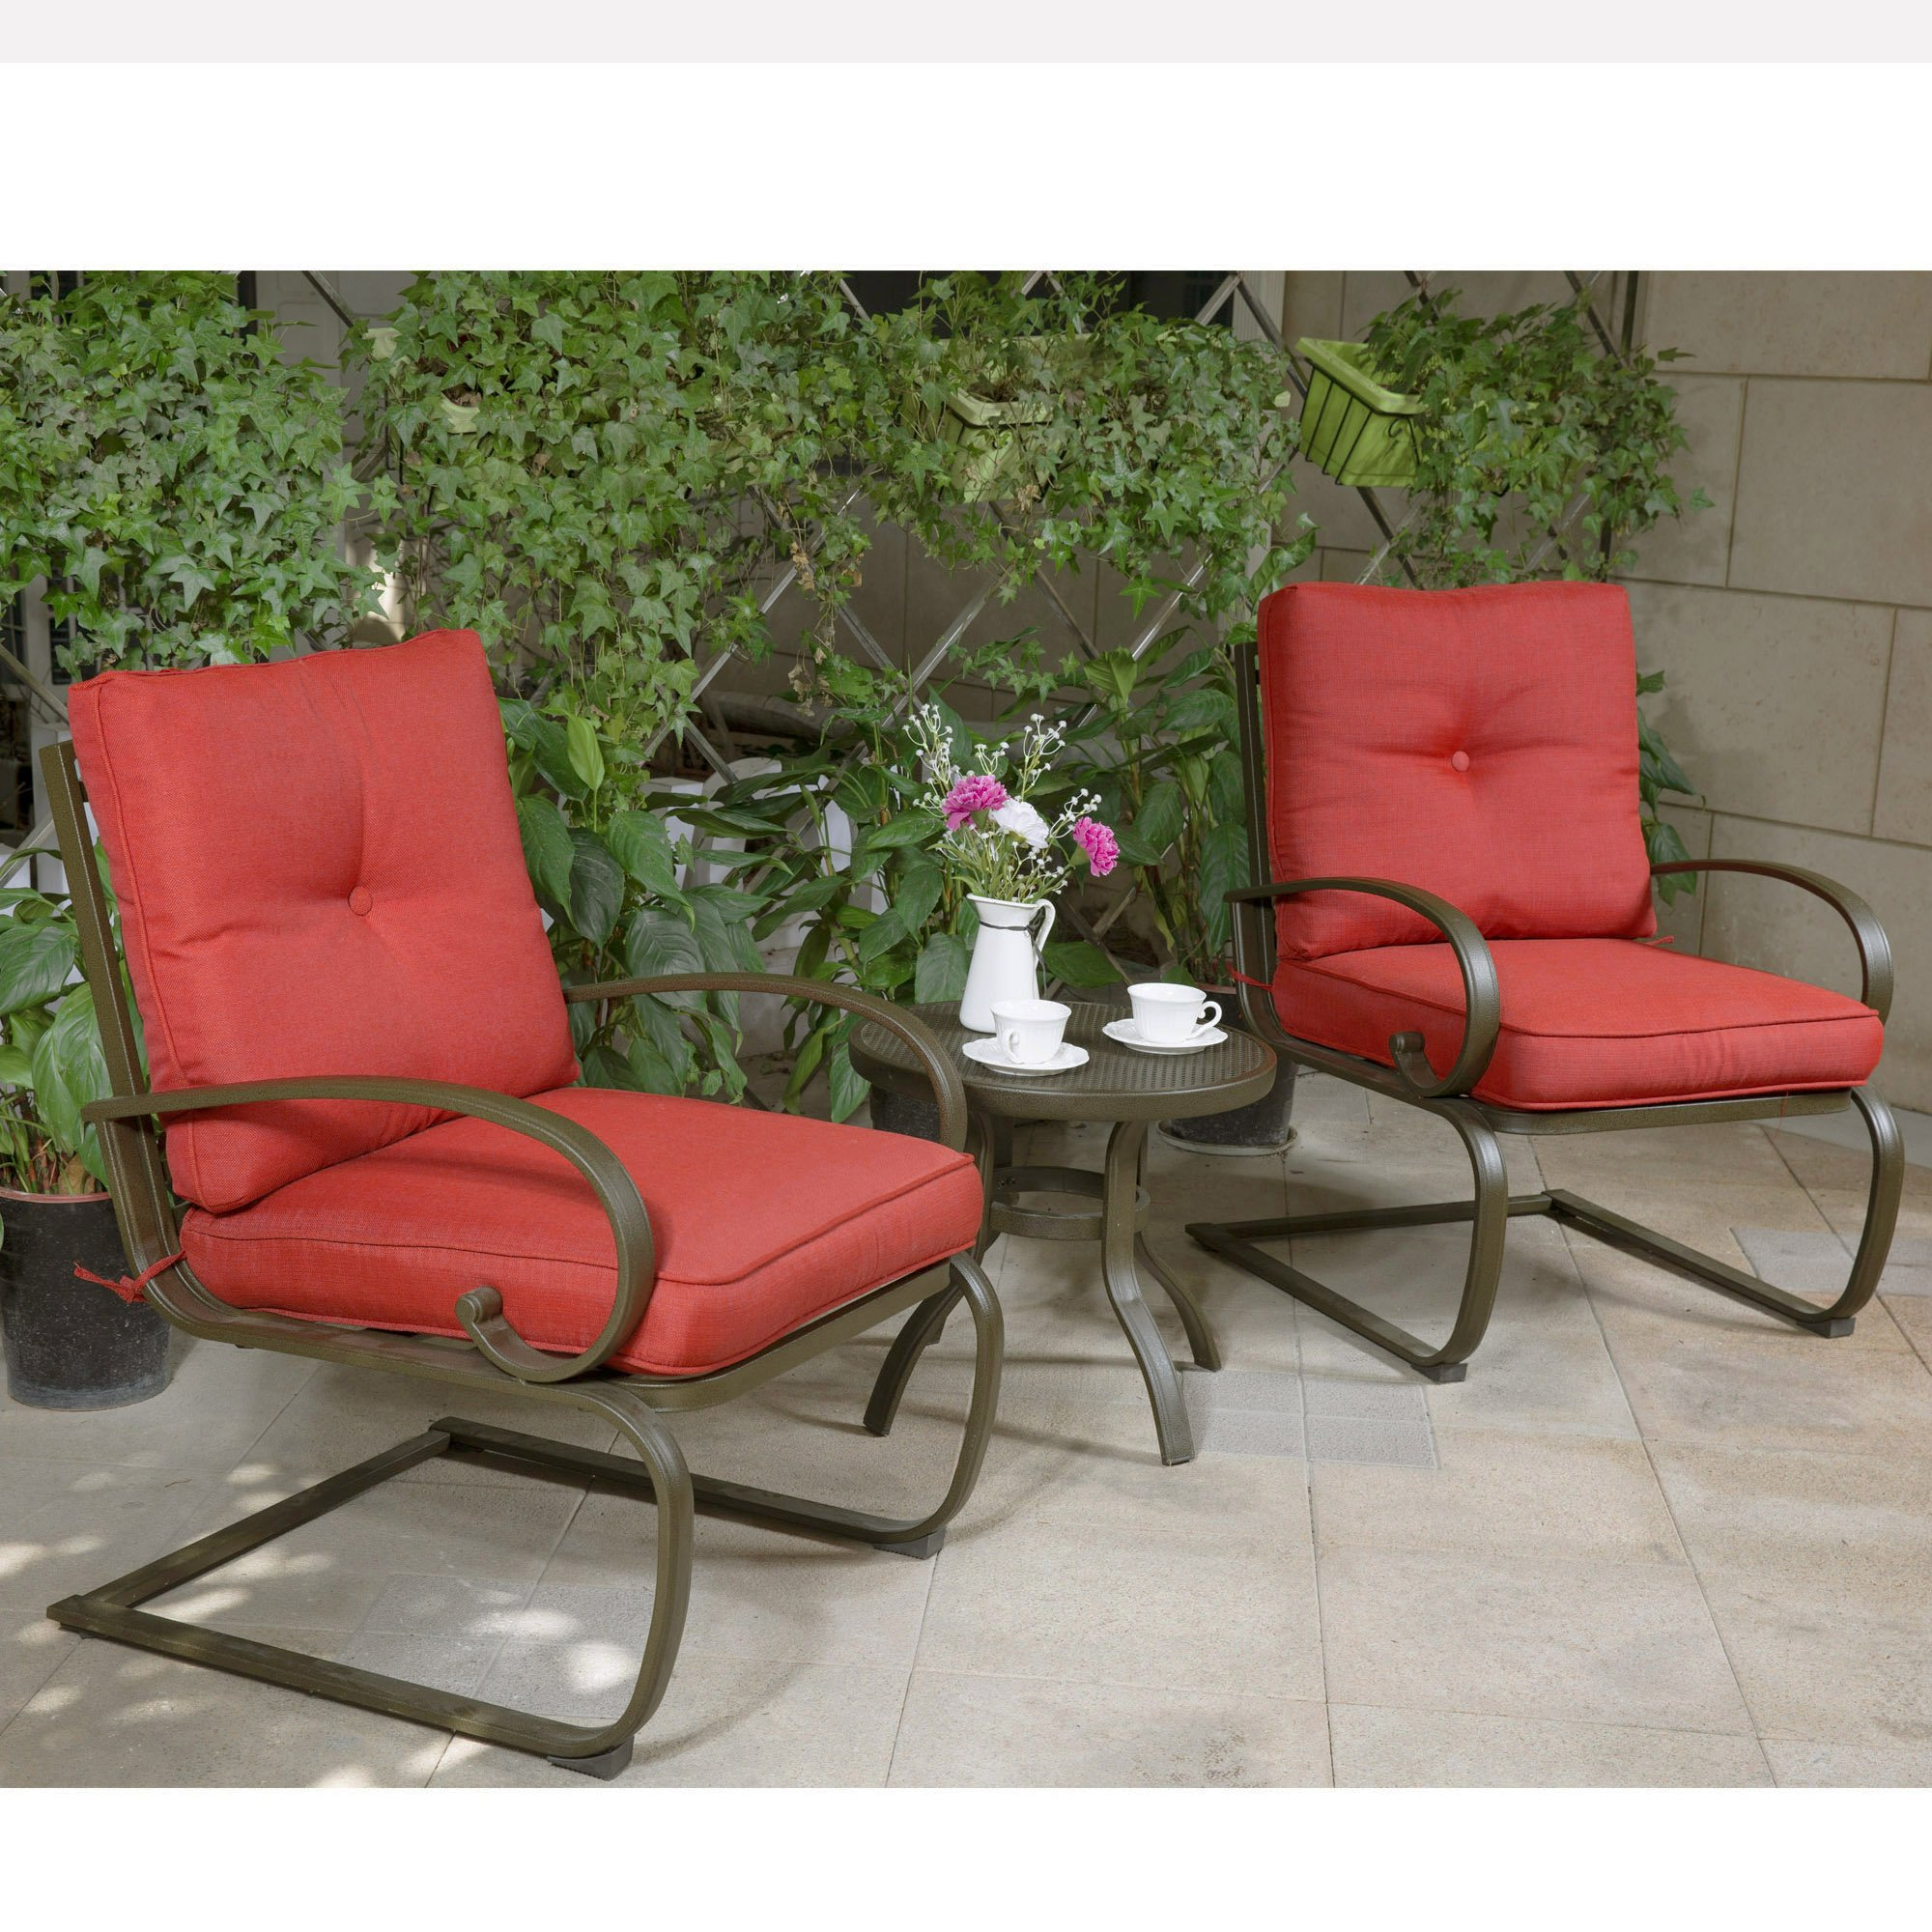 Cloud Mountain Bistro Table Set Outdoor Bistro Set Patio Cafe Furniture Seat, Wrought Iron Bistro Set, Garden Set with Cushioned Seats, Brick Red